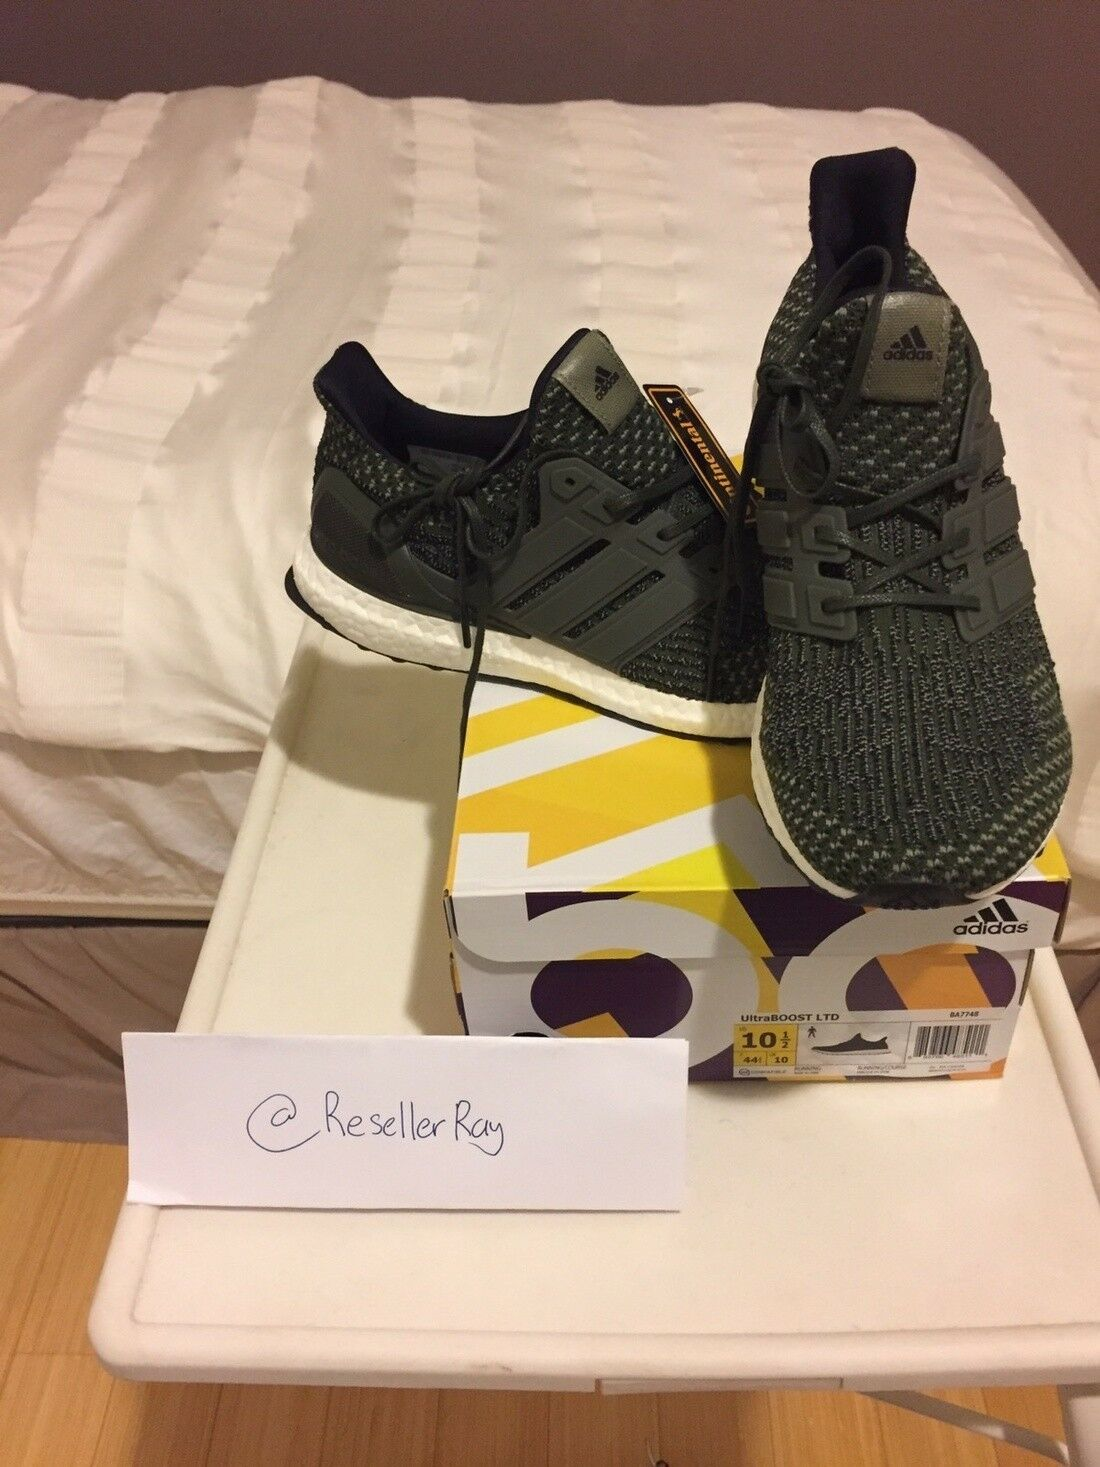 UltraBOOST 3.0 Trace Cargo Limited Edition